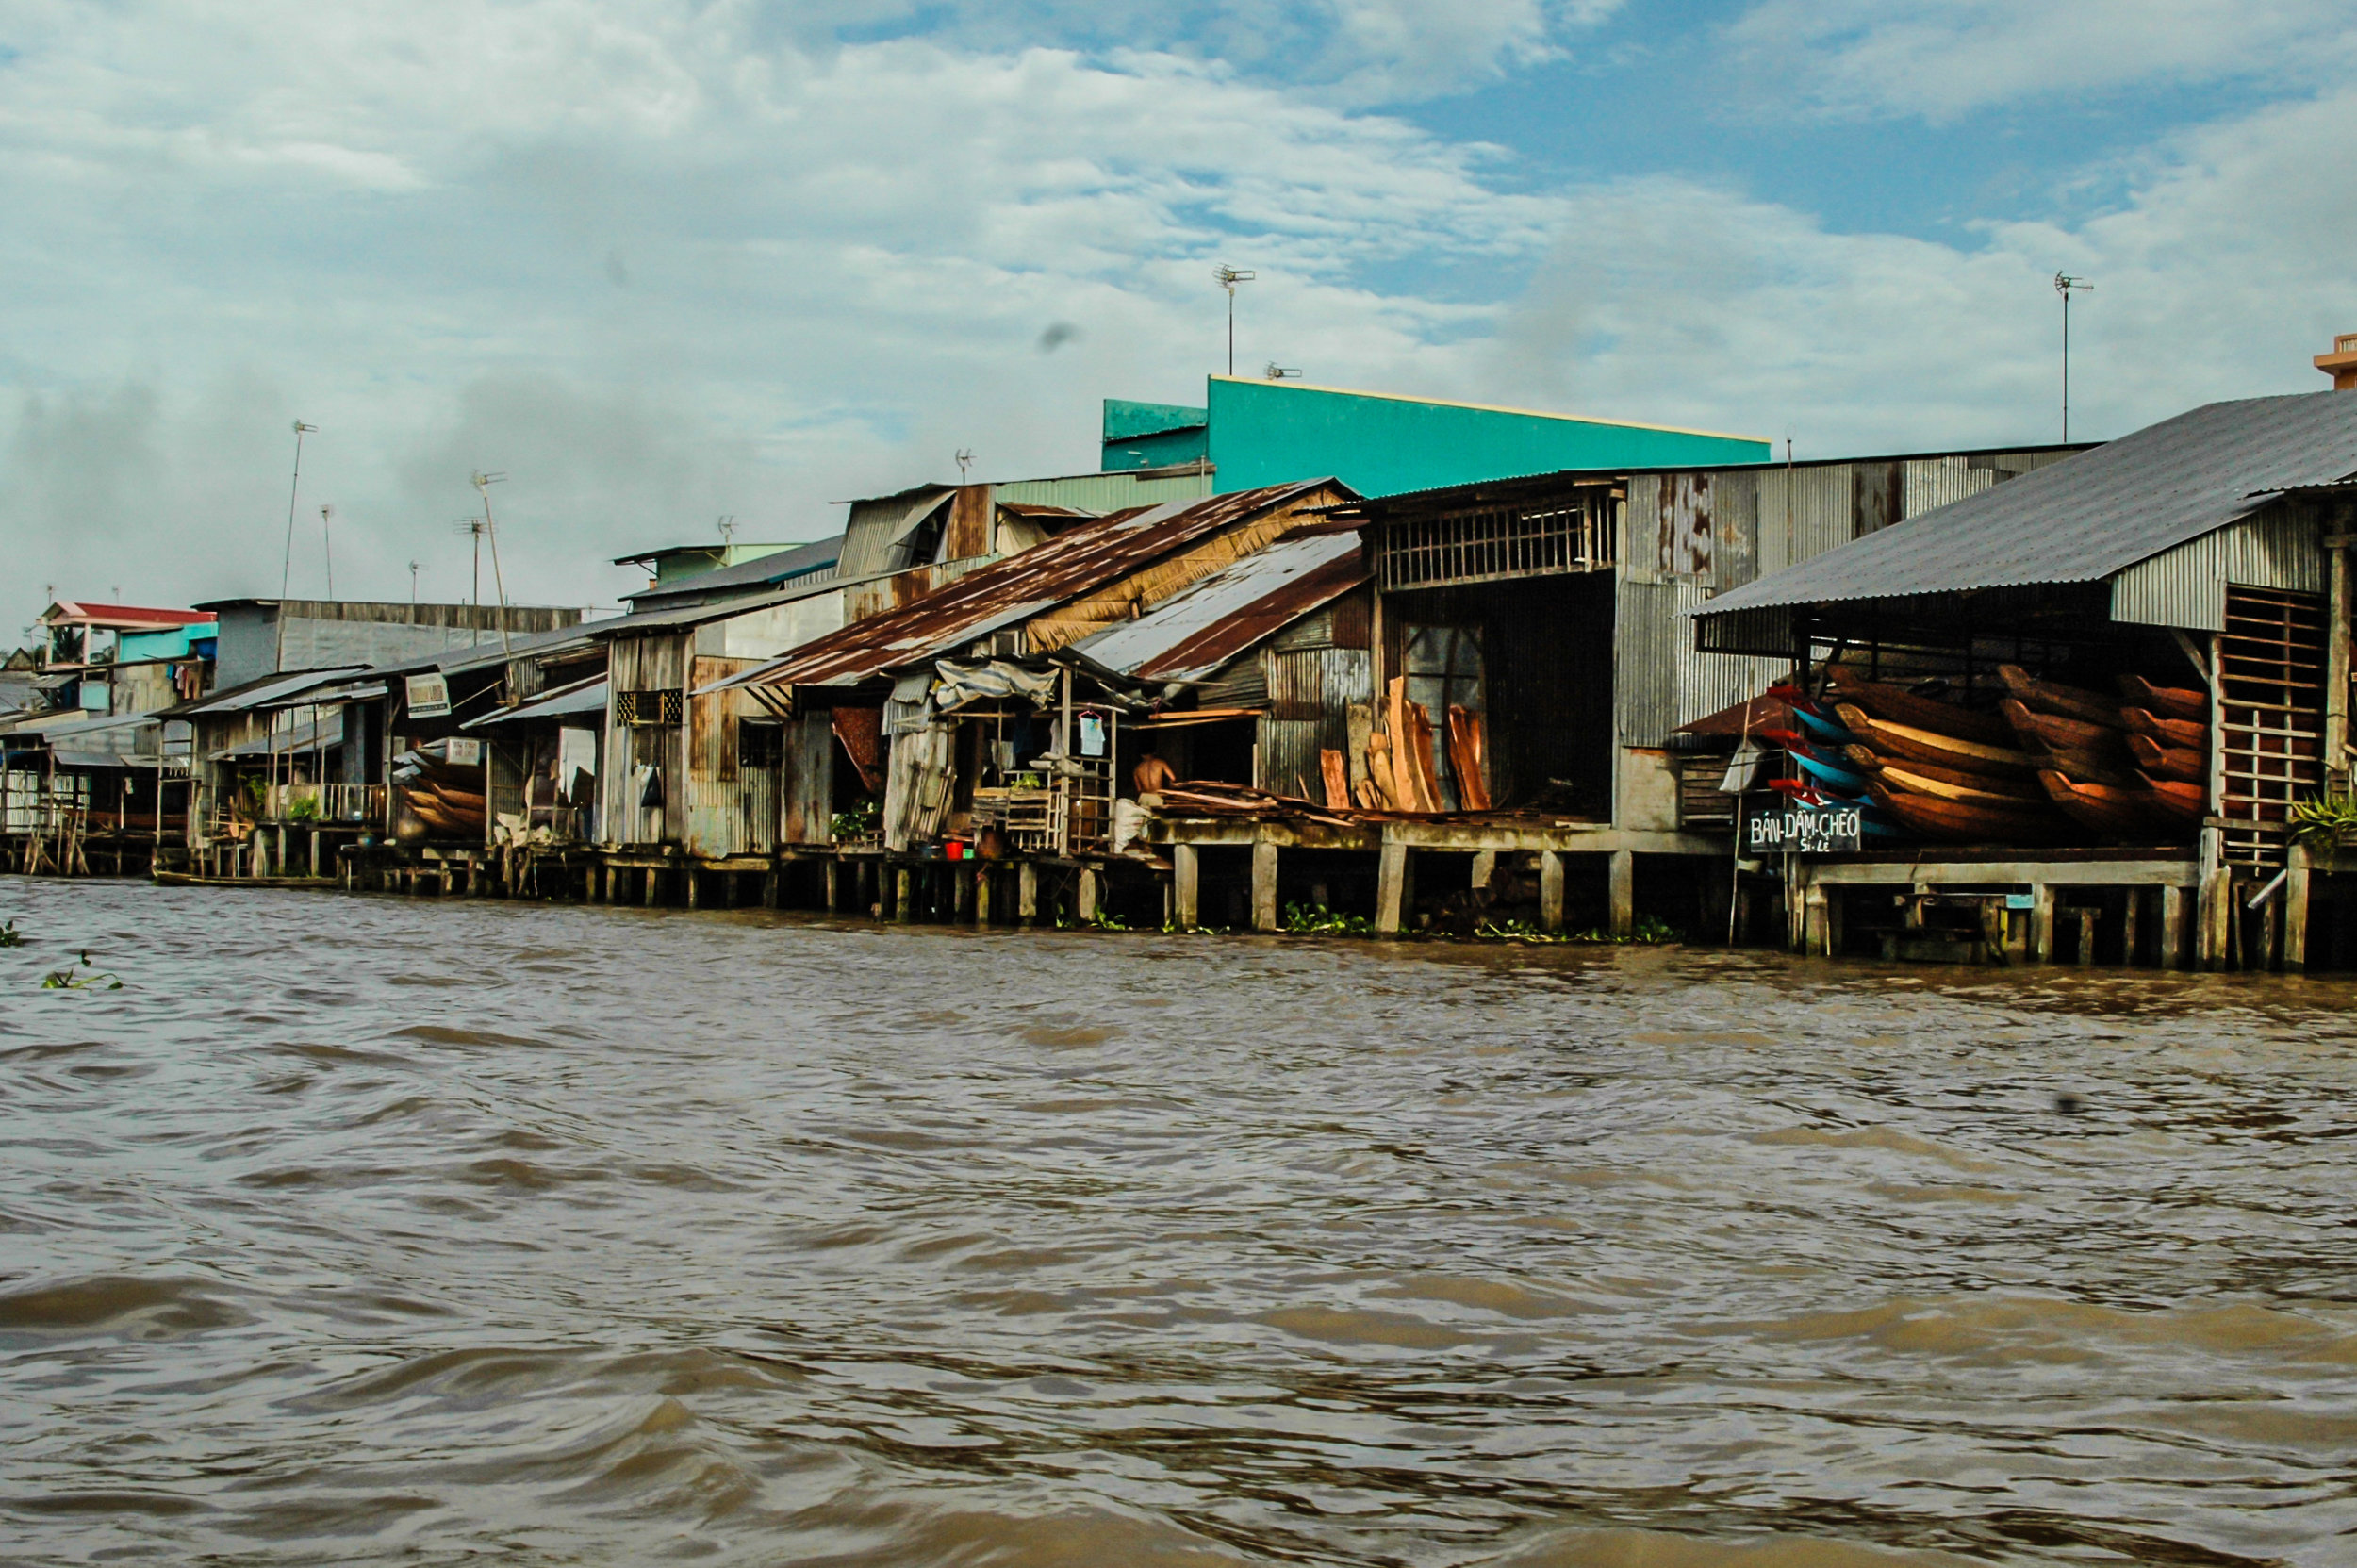 LifeontheMekongDelta-22.jpg